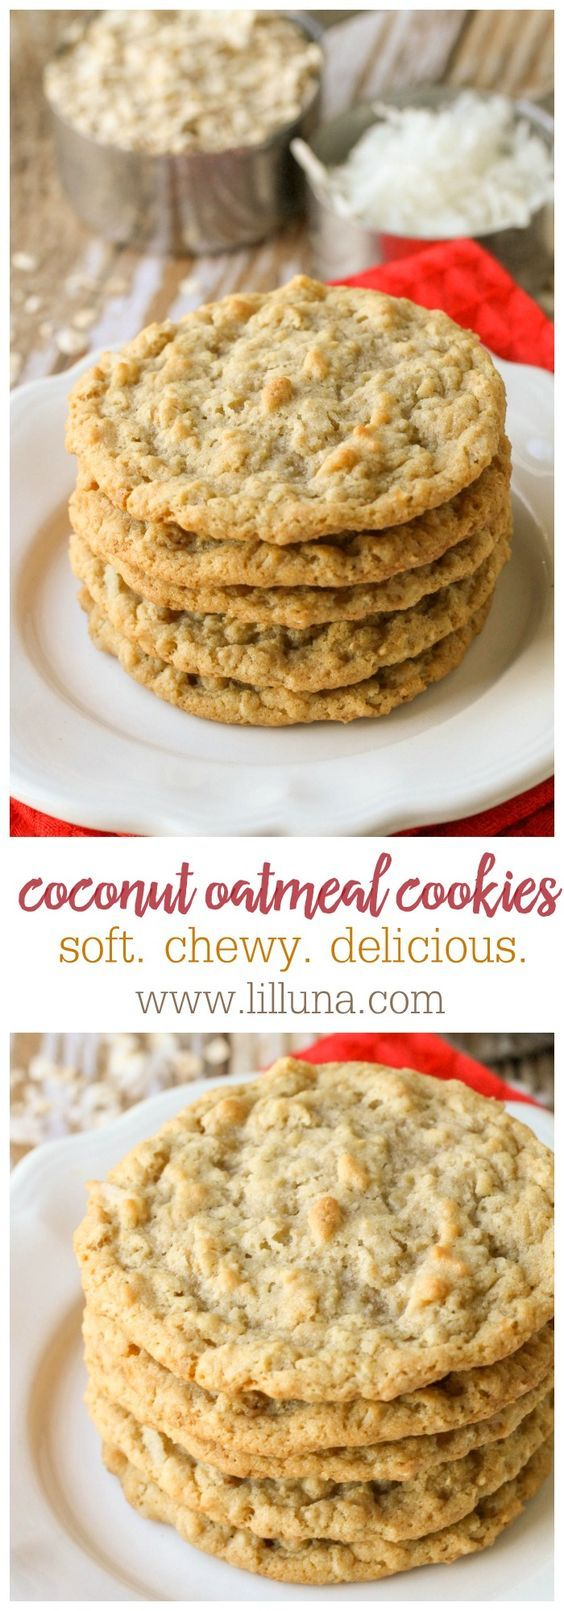 2210 best Cookies & Bars images on Pinterest | Cookies, Bar cookies ...